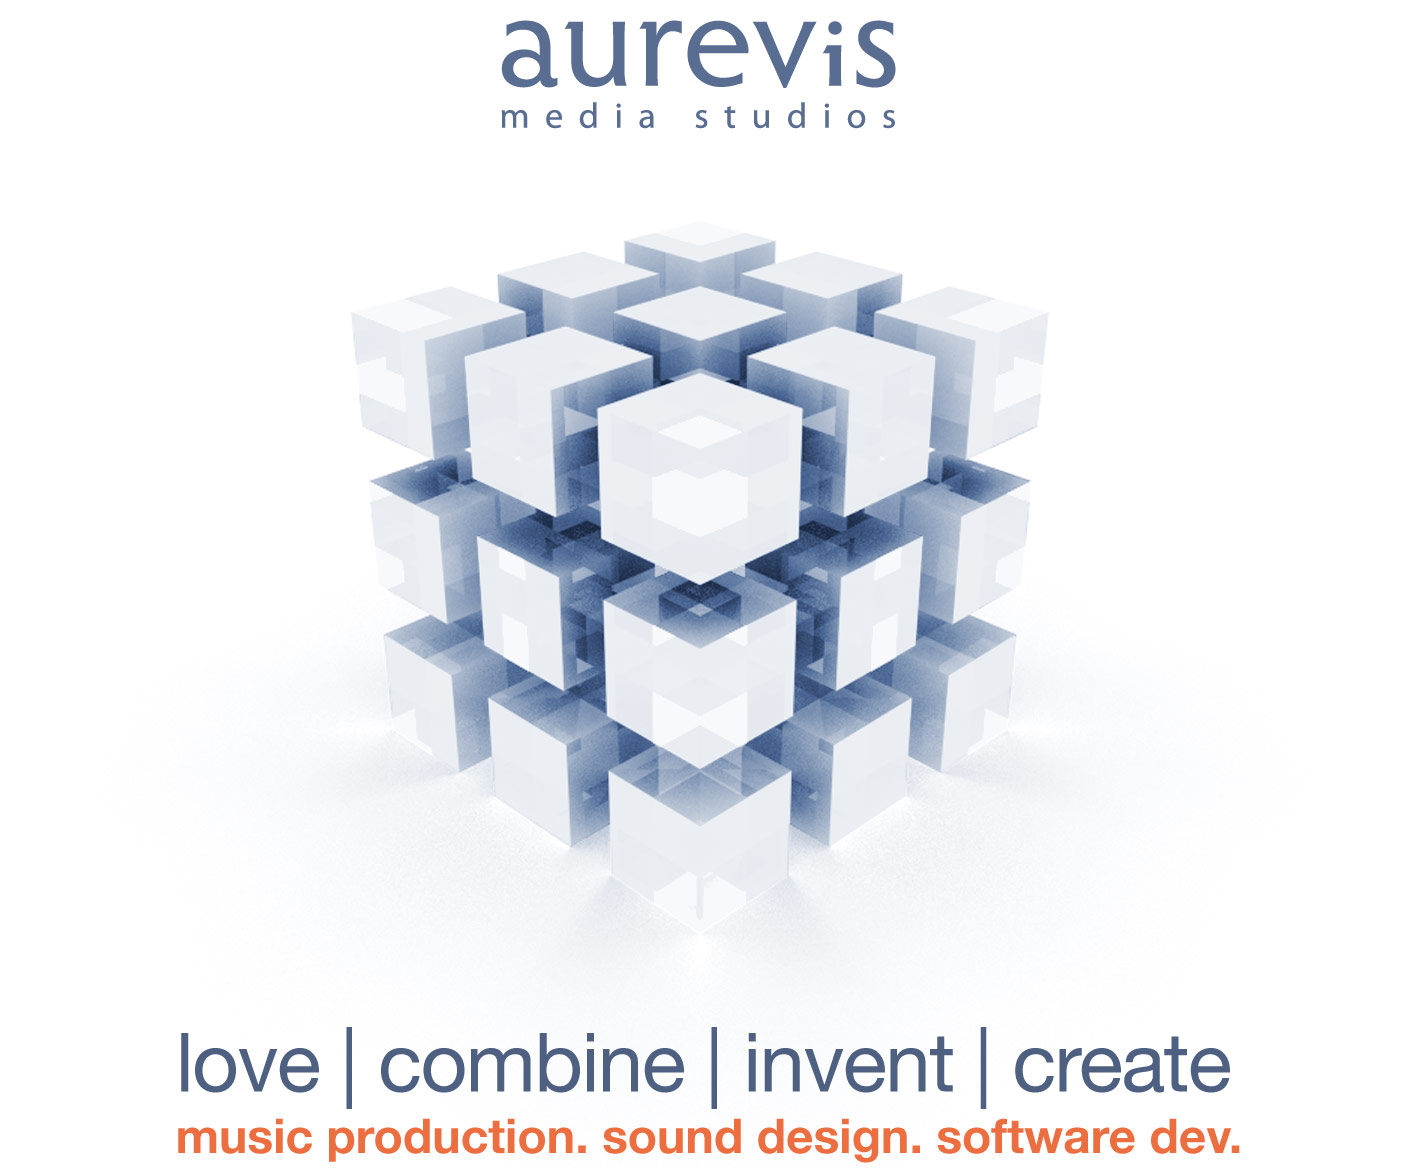 aurevis media studios - love | combine | invent | create - music production. sound design. software dev.